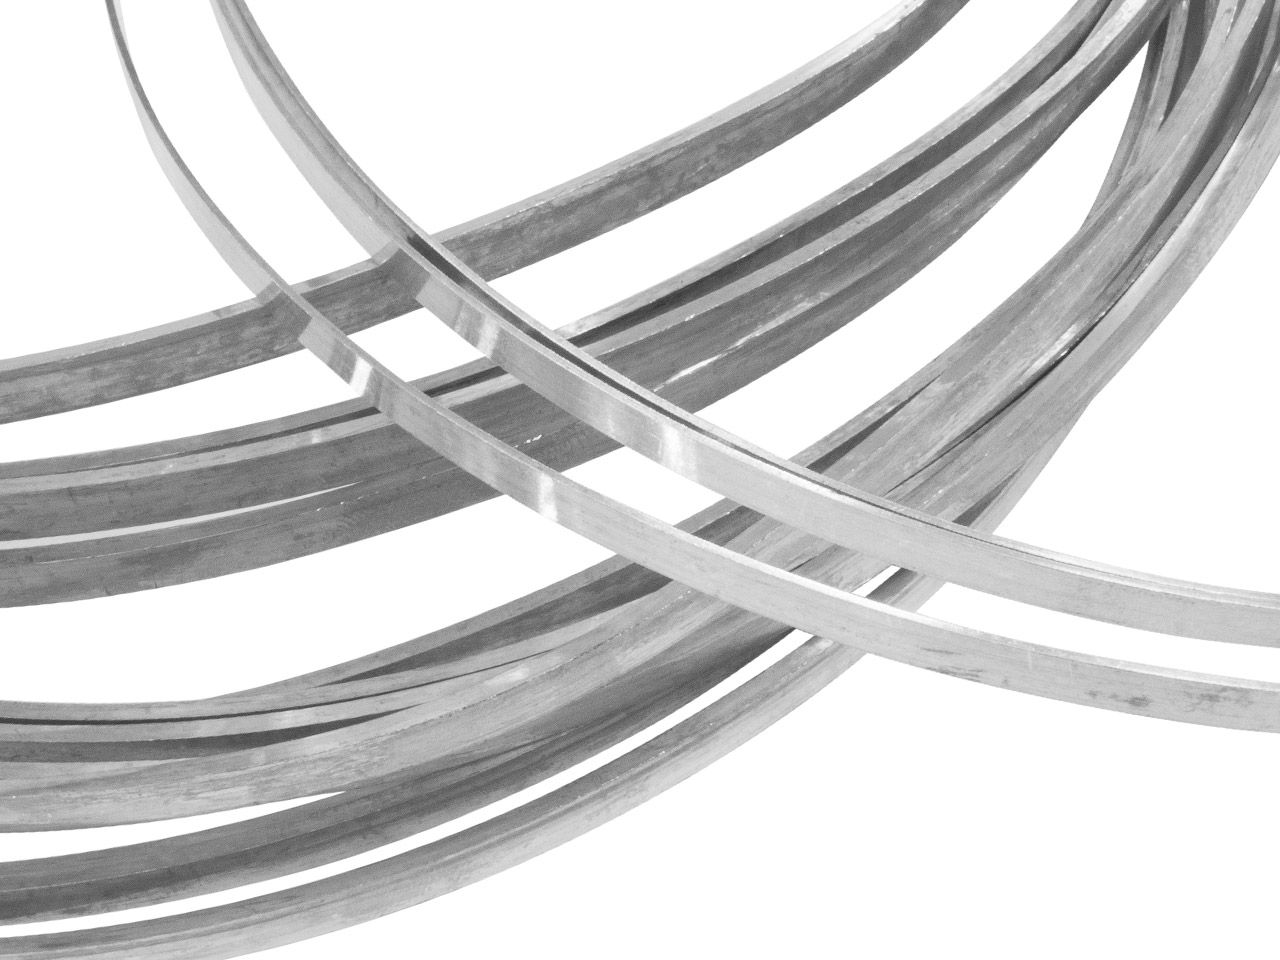 Sterling Silver Rectangular Wire   5.0mm X 1.7mm Fully Annealed